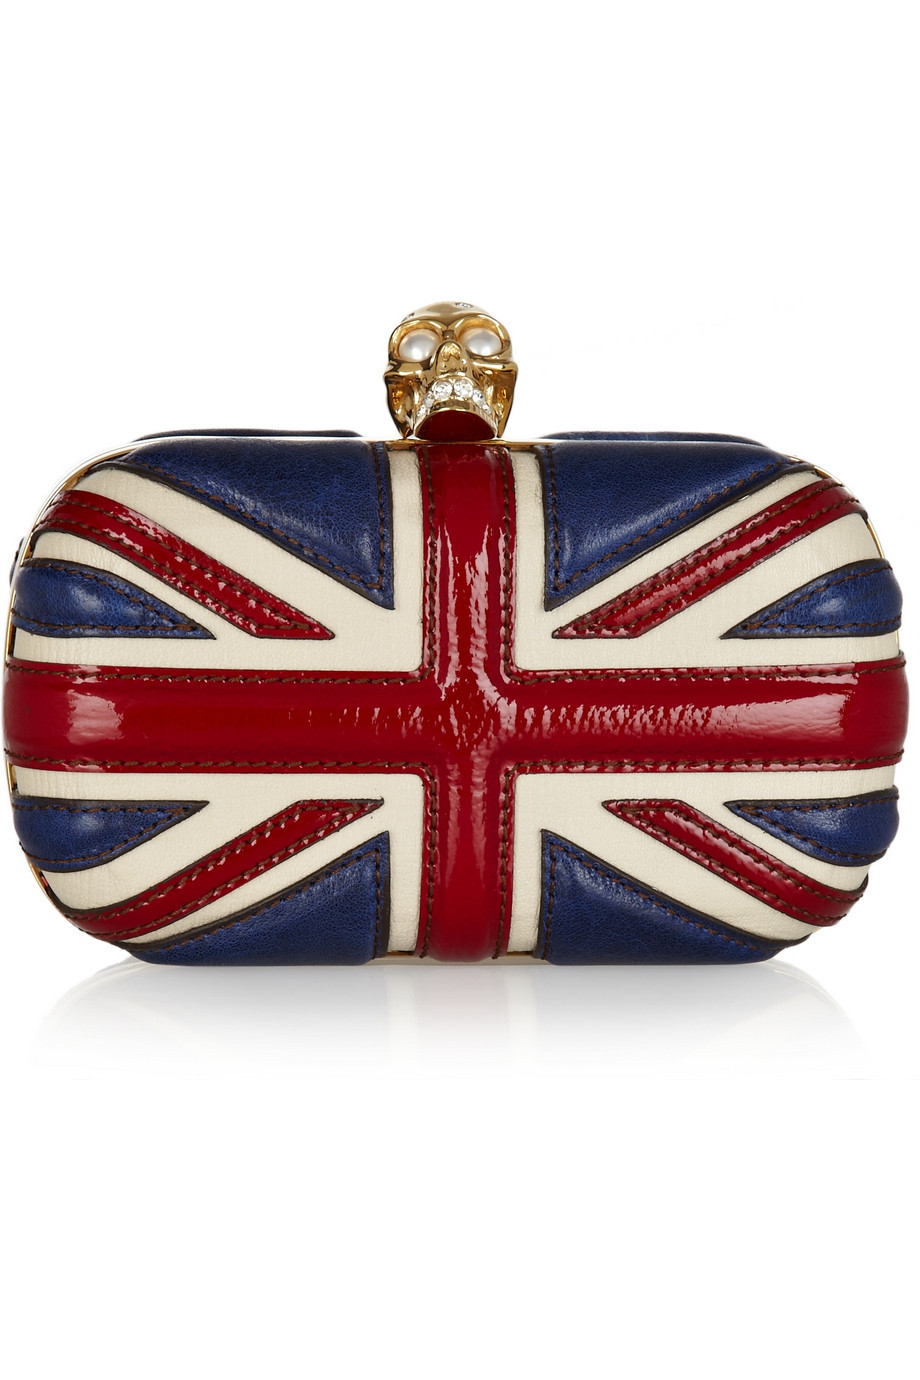 Still have my Jubilee pride as this Alexander McQueen clutch has given me some serious bag envy! Photo Credit:Net A Porter